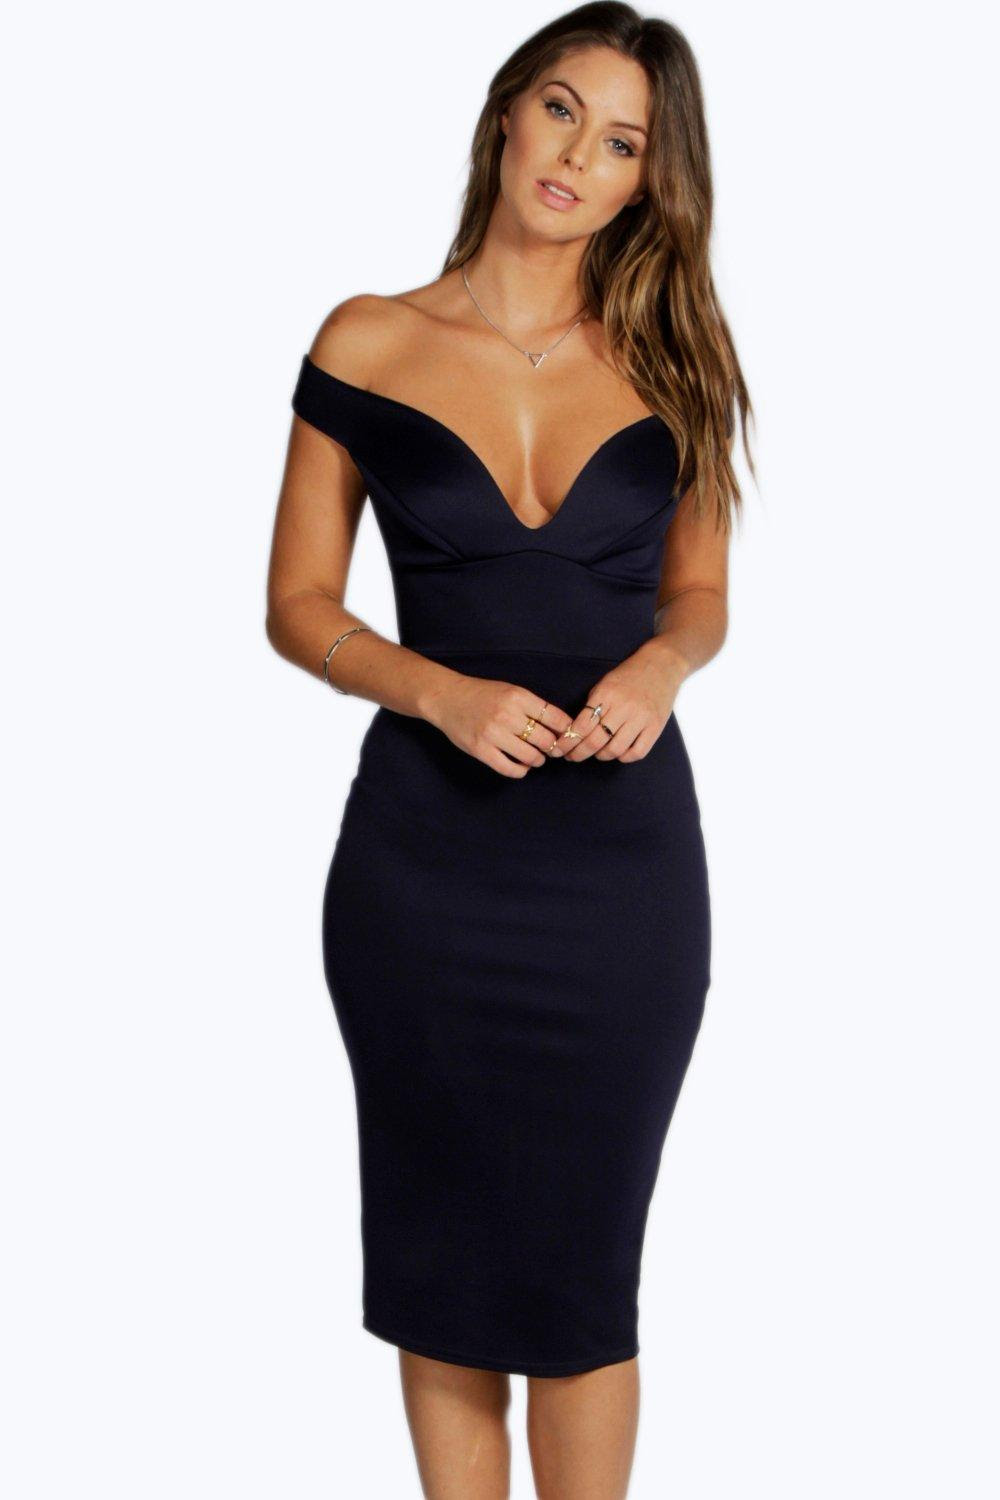 Sizes a what bodycon dress in world is the flipkart lot for